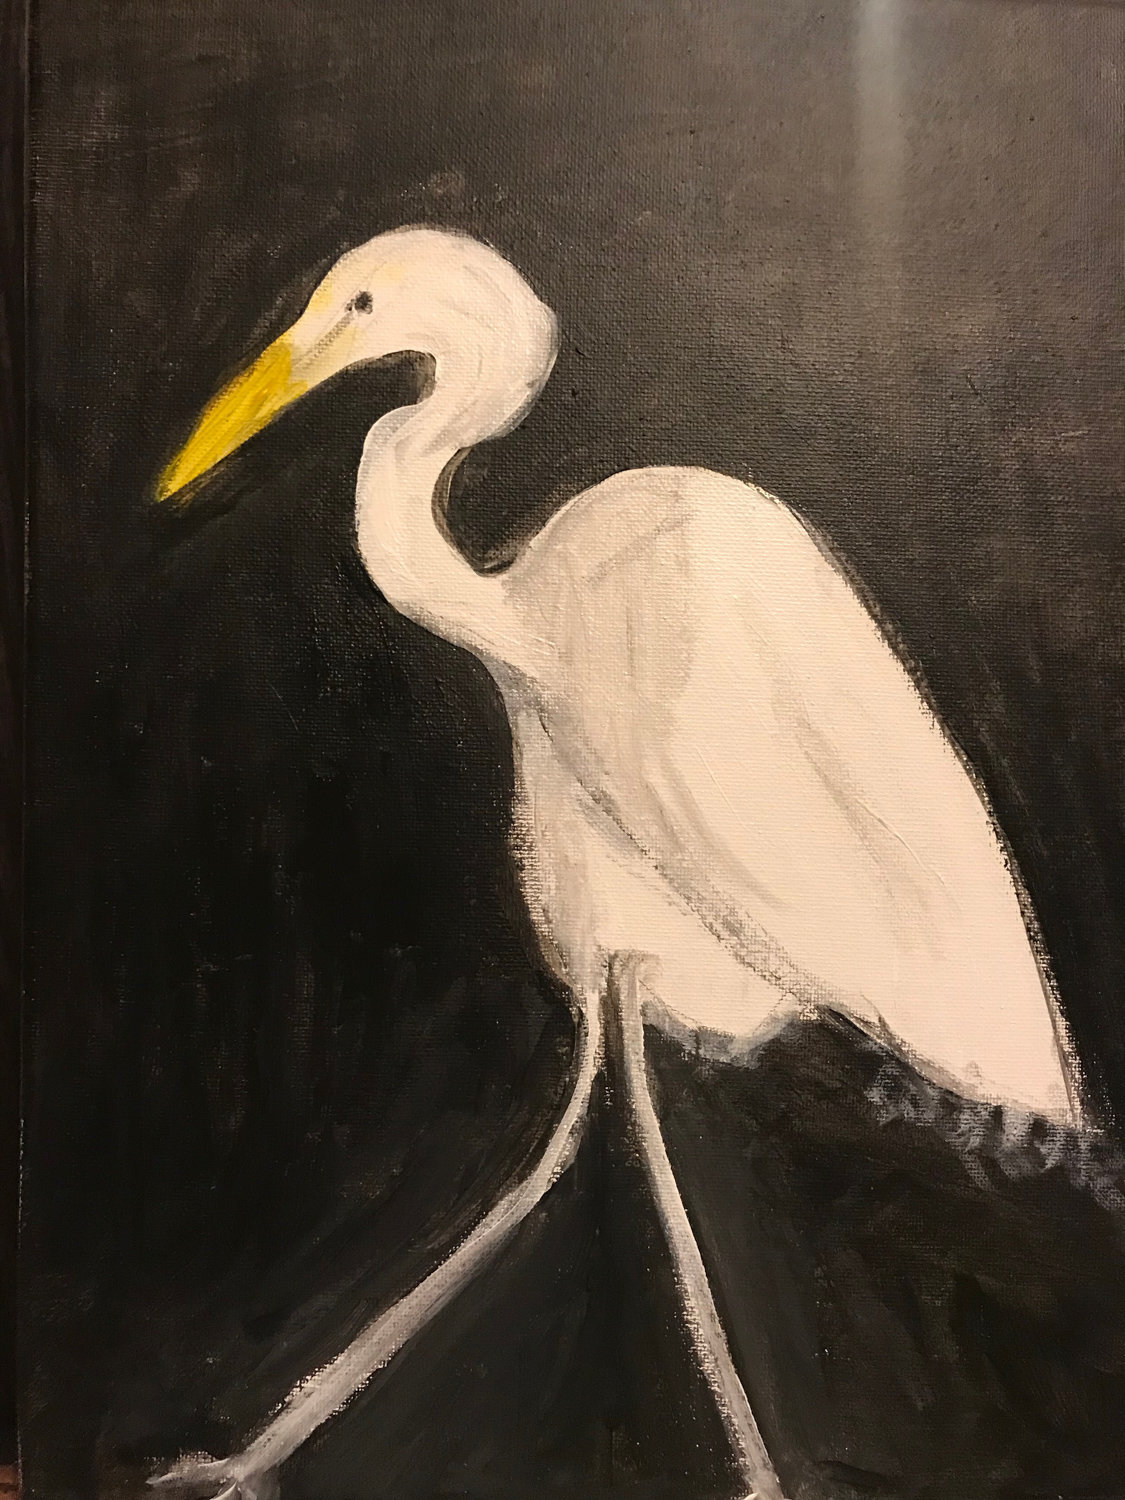 The group exhibition 'Black & White' brings together monochrome paintings by Riverdale Art Association members like Anne Price and her work 'Egret.'